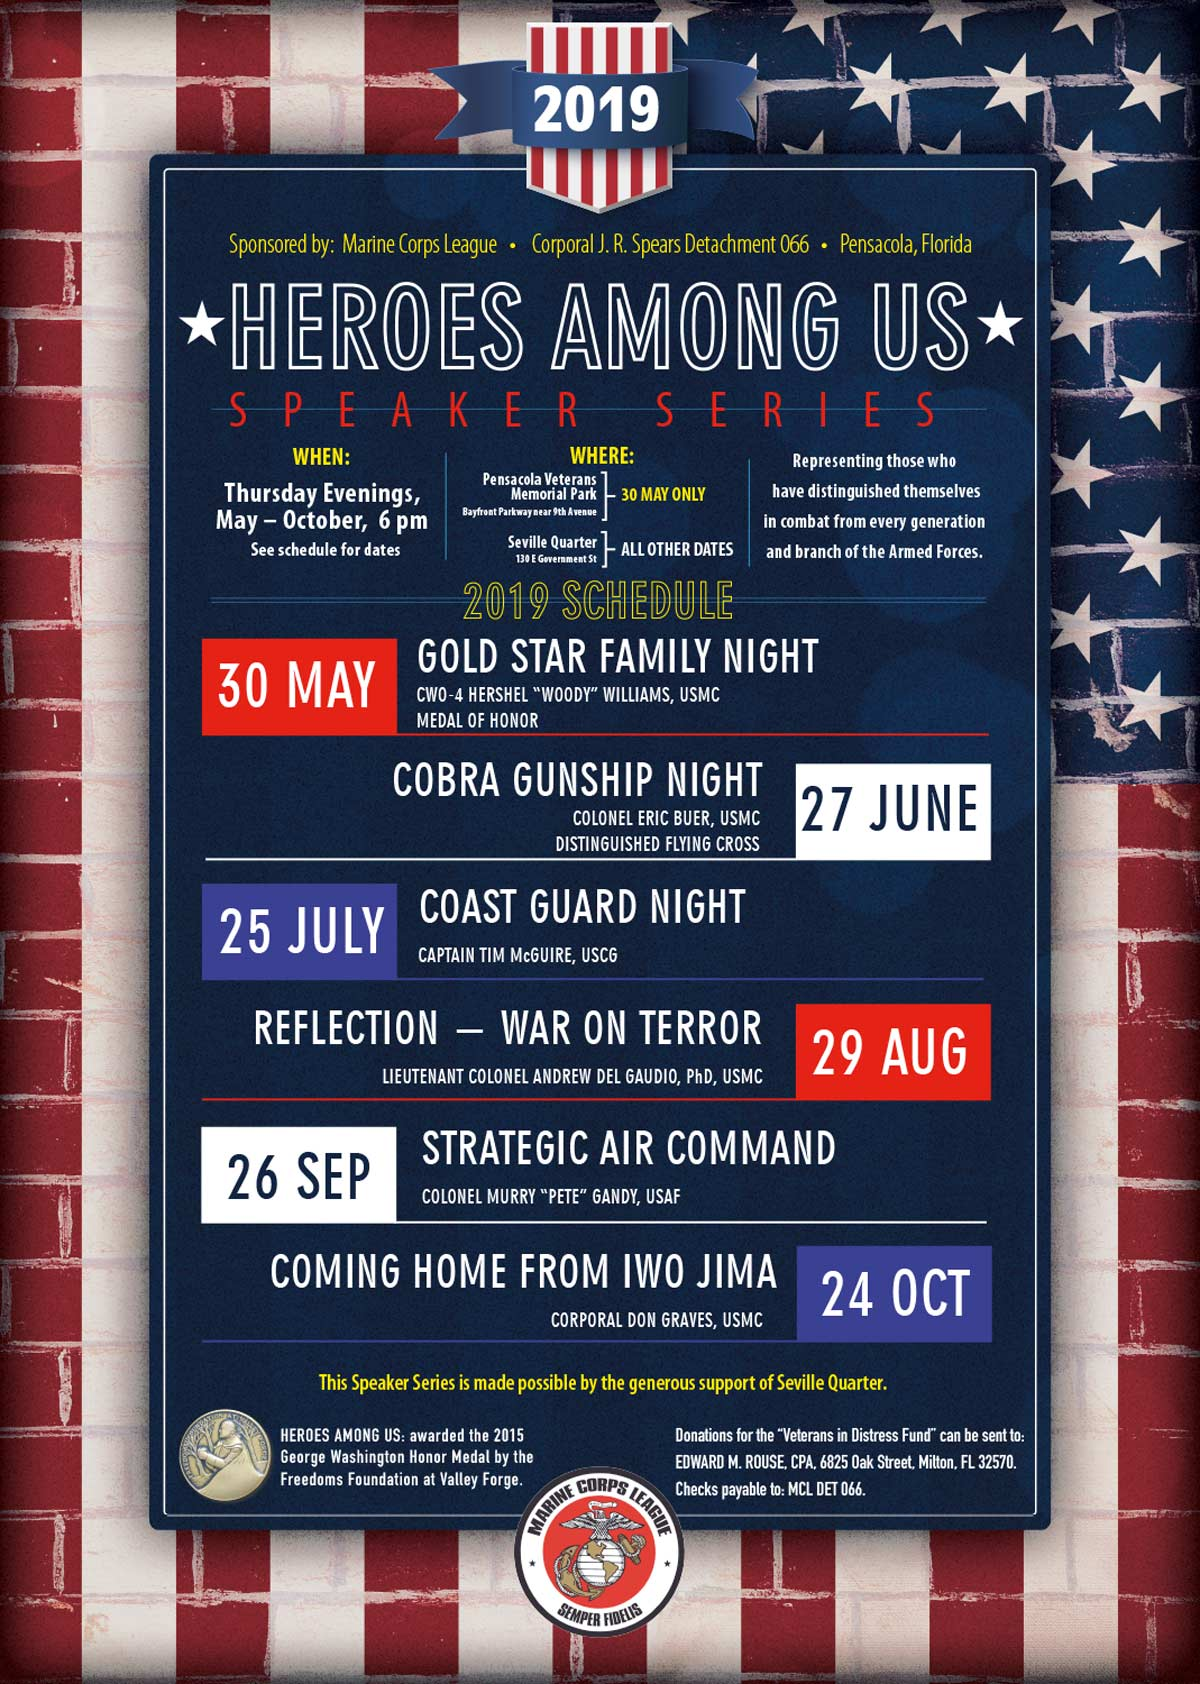 Seville Quarter News The Marine Corps League's 7th Annual Heroes Among Us Speaker Series